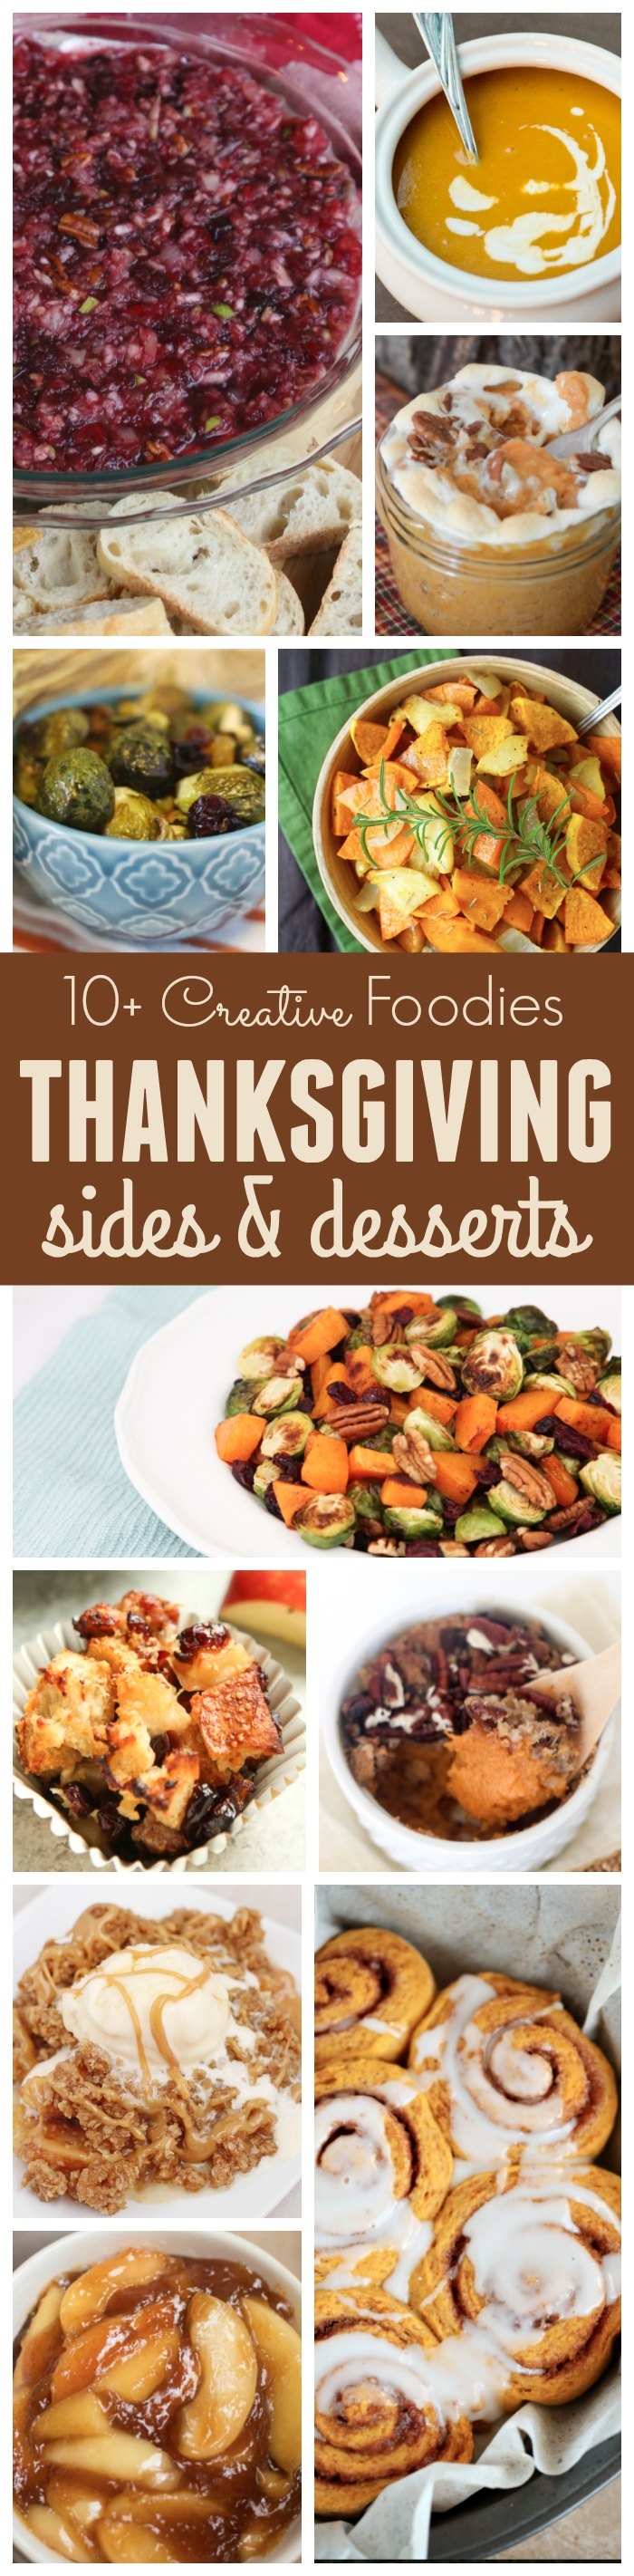 10+ Thanksgiving Sides & Desserts Recipes